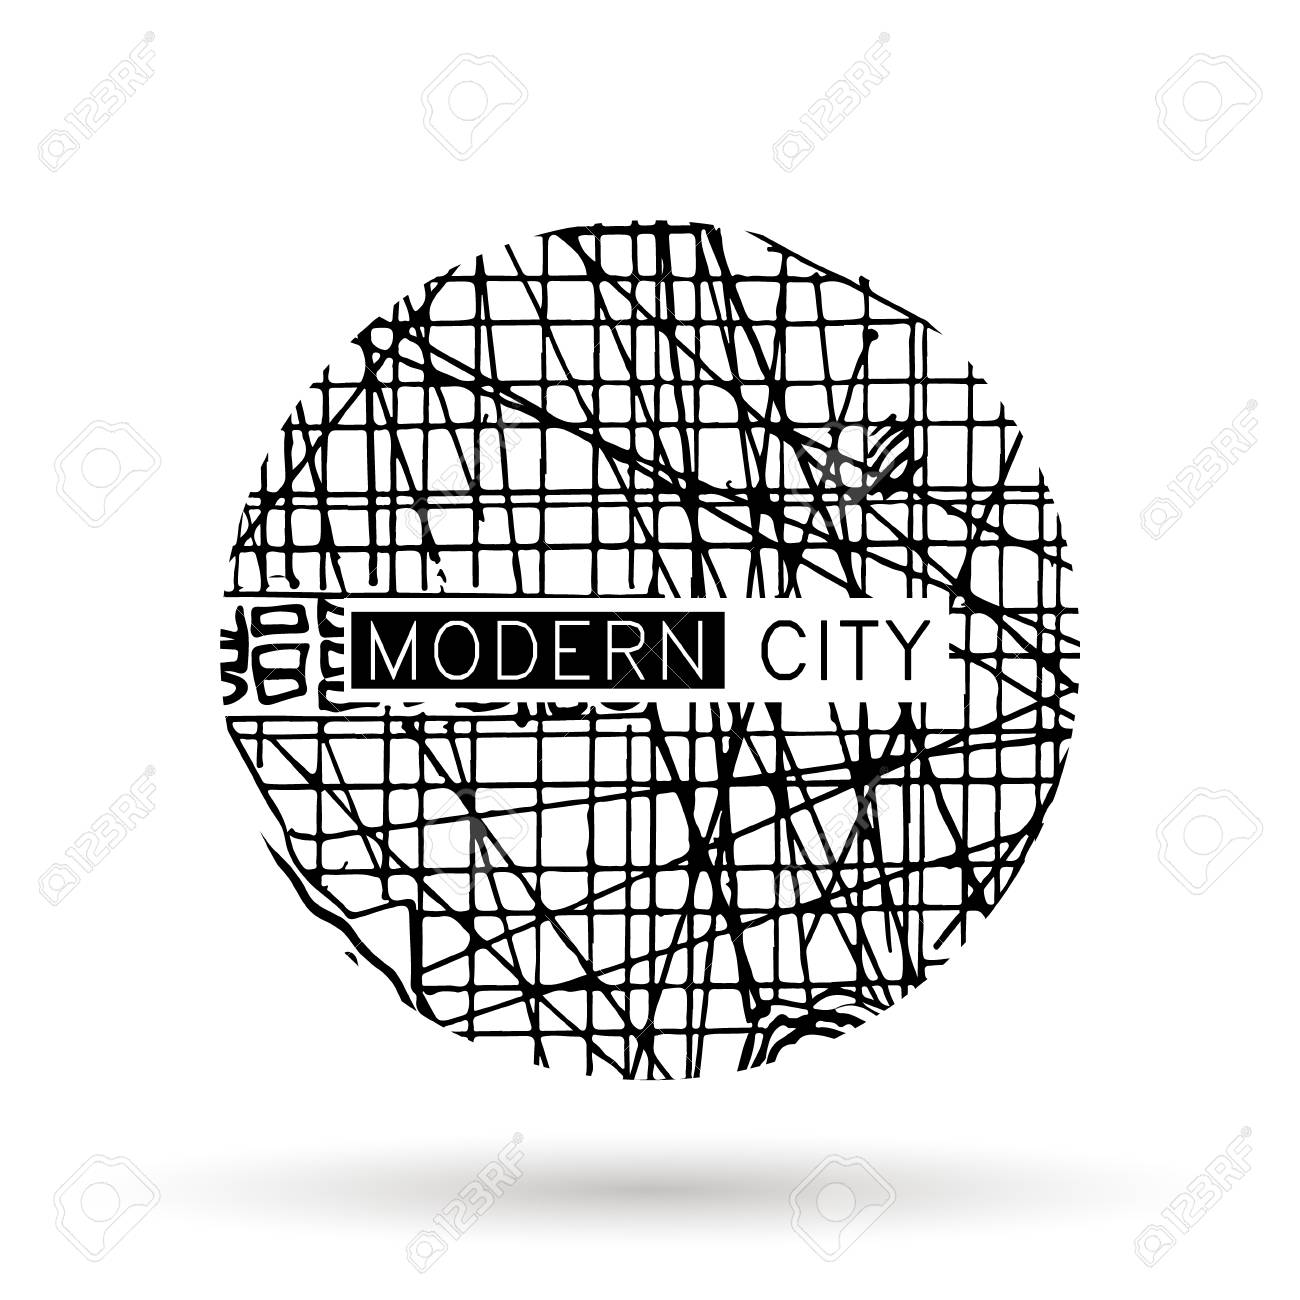 Logo With Ink Doodle Maps, Architecture Drawing Lizenzfrei Nutzbare Doodle Maps on